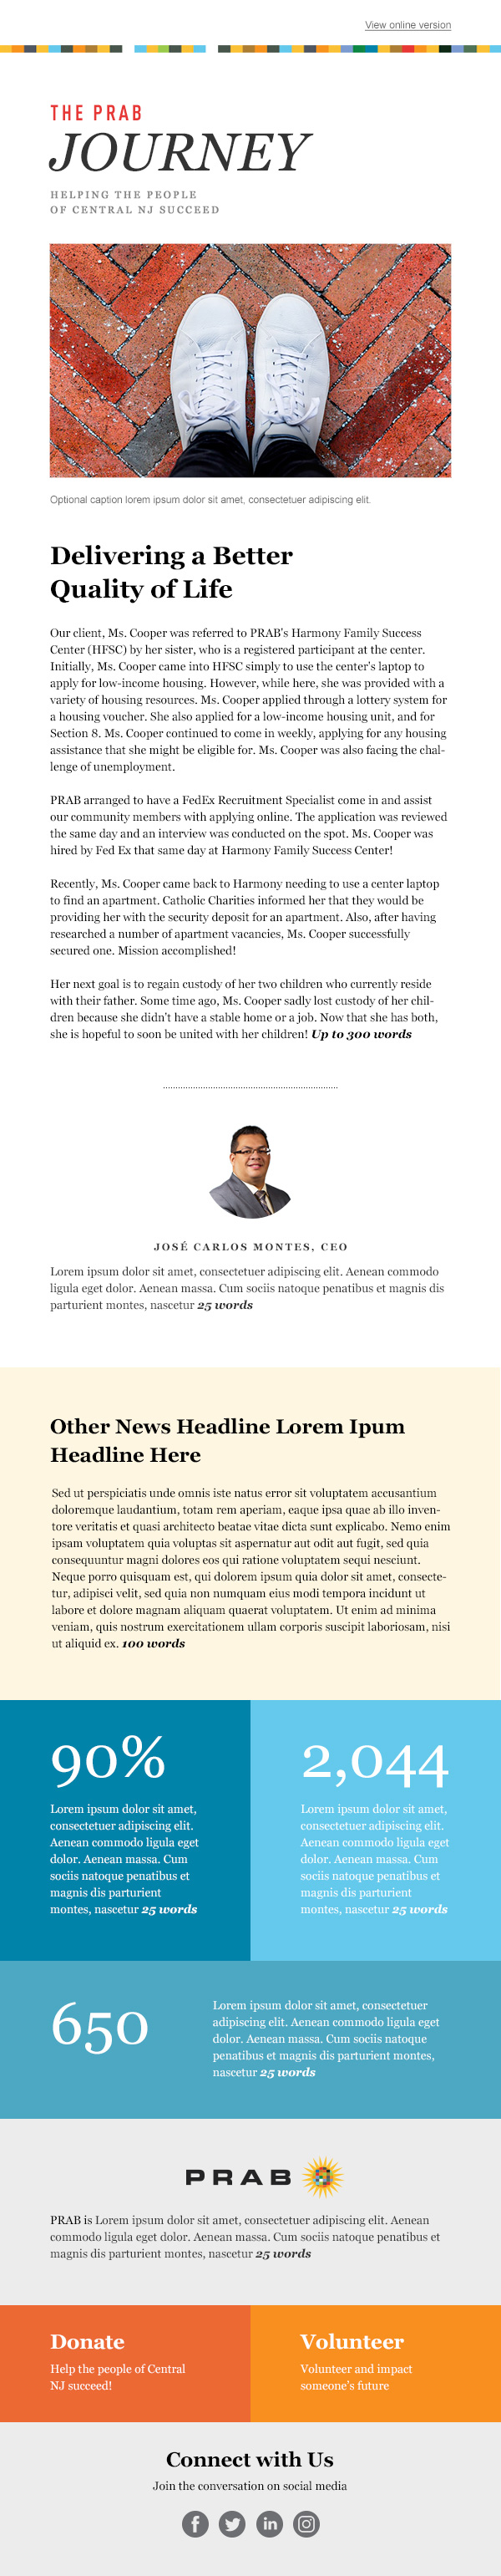 PRAB email newsletter template